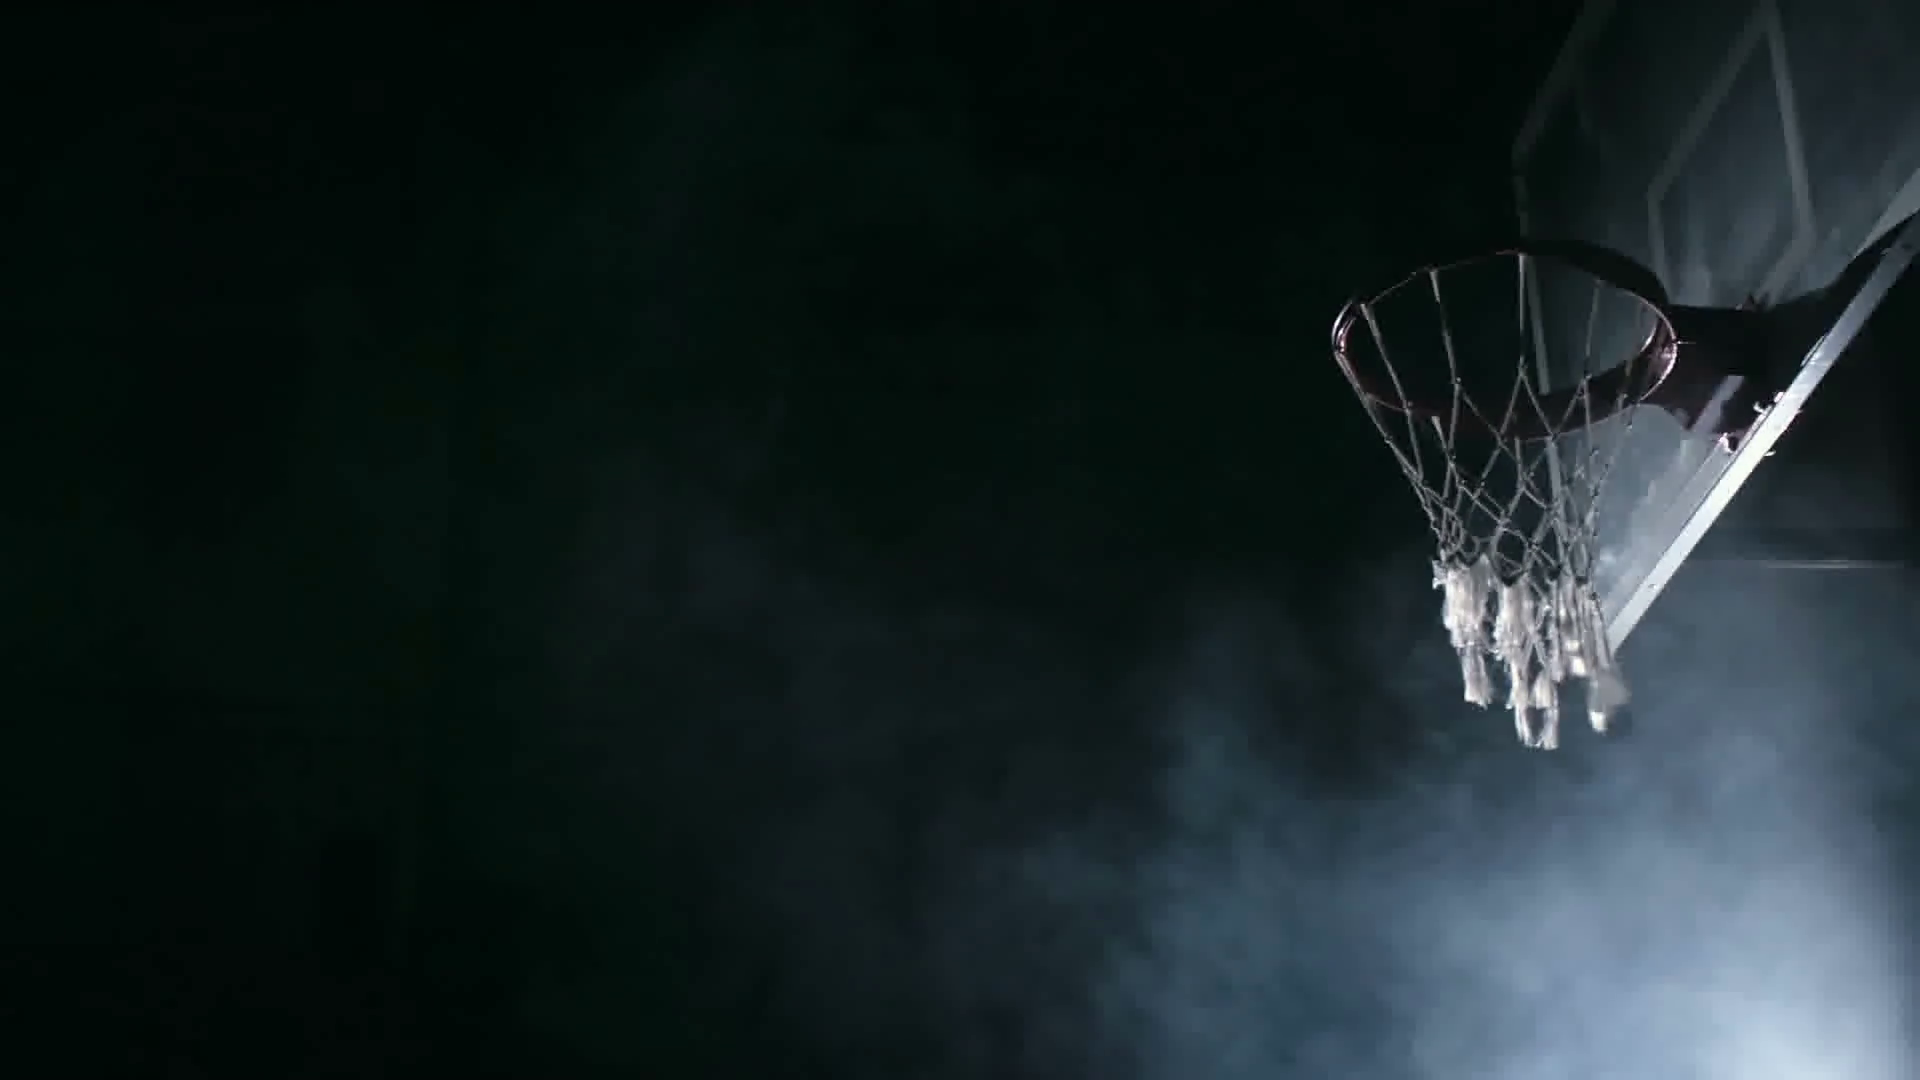 One handed slam dunk performed by basketball player in dark court 1920x1080